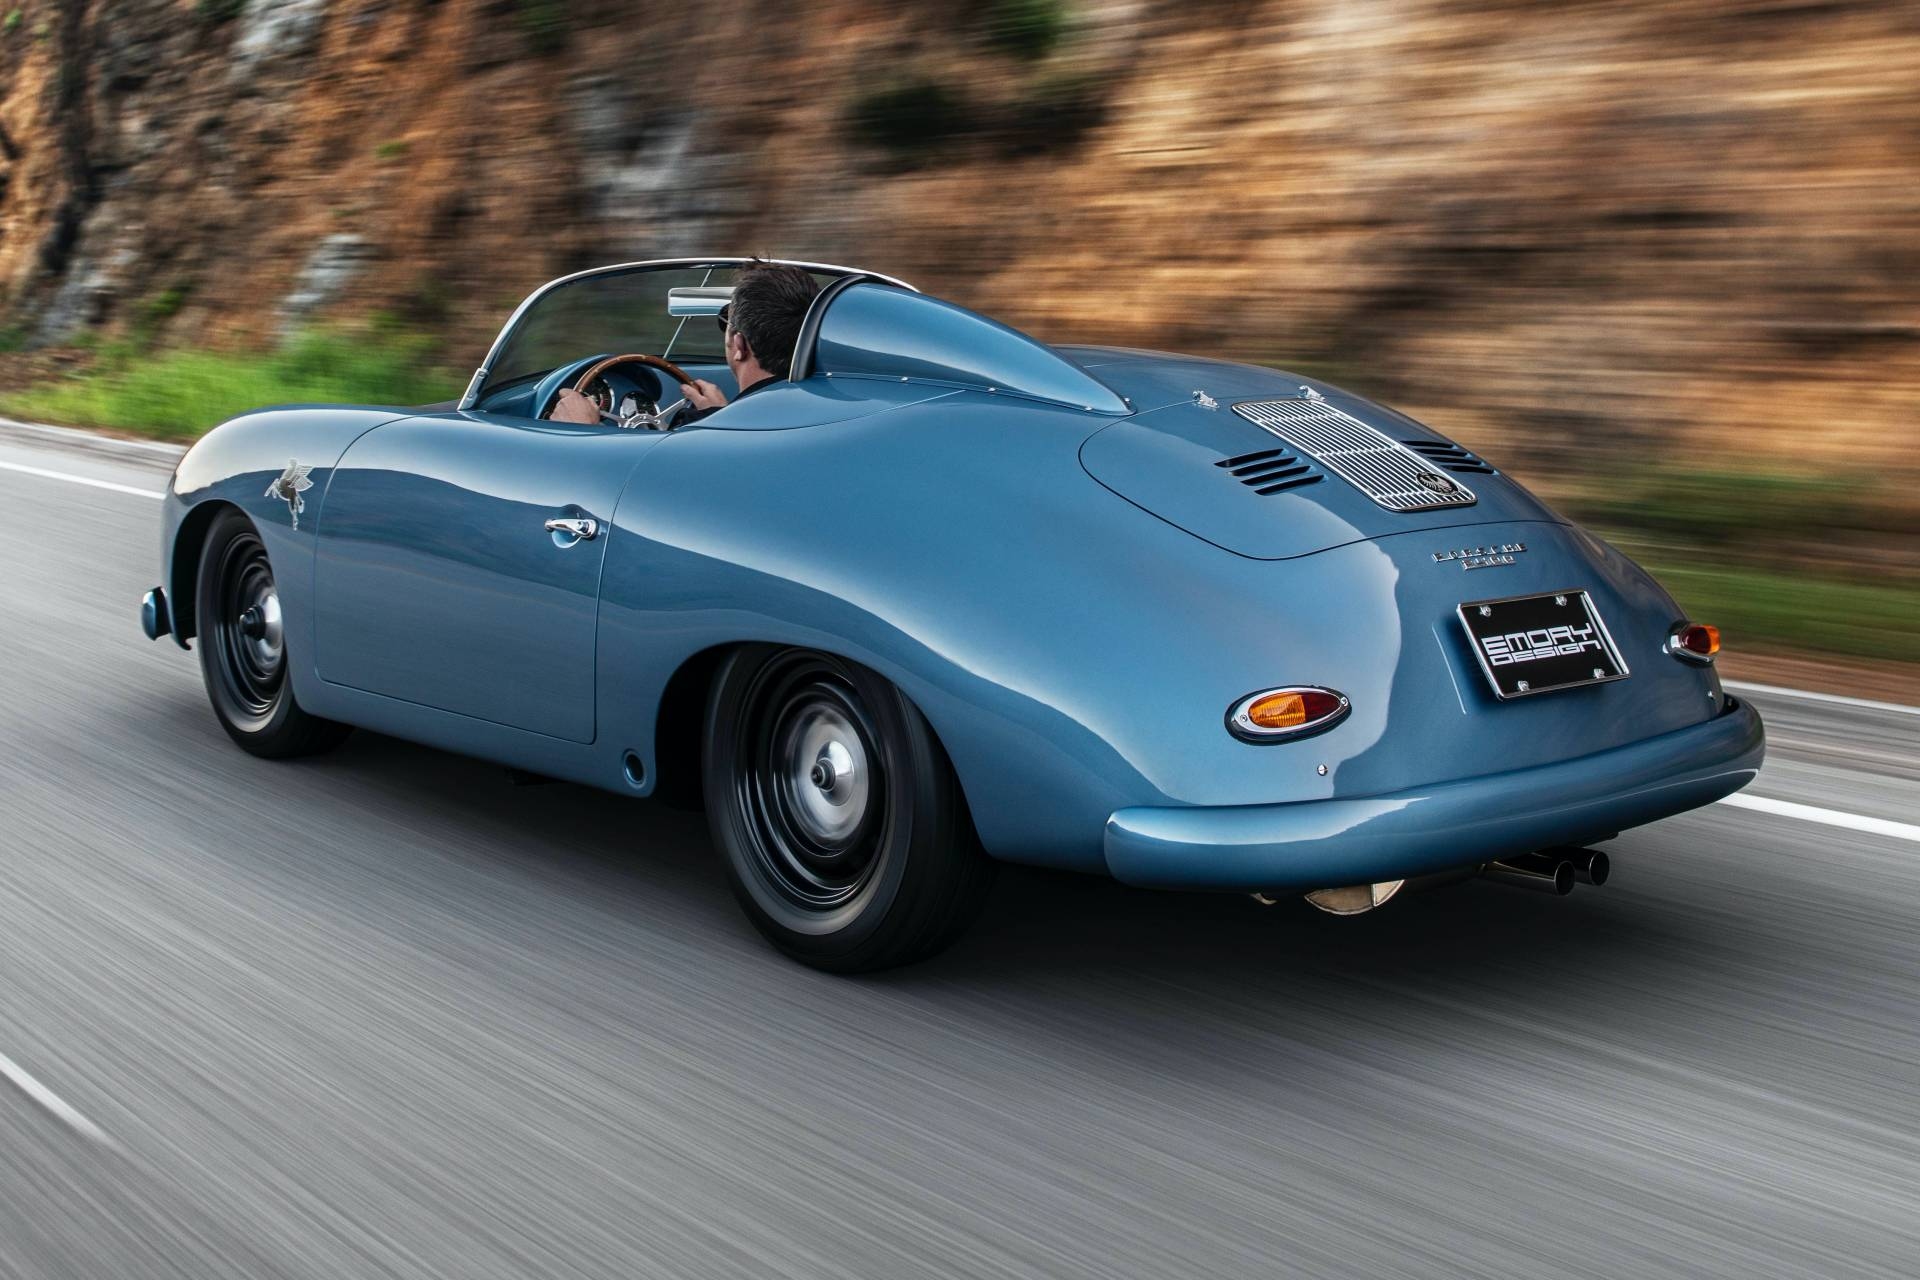 Porsche-356-Speedster-1959-Aquamarine-Transitional-By-Emory-Motorsport-3